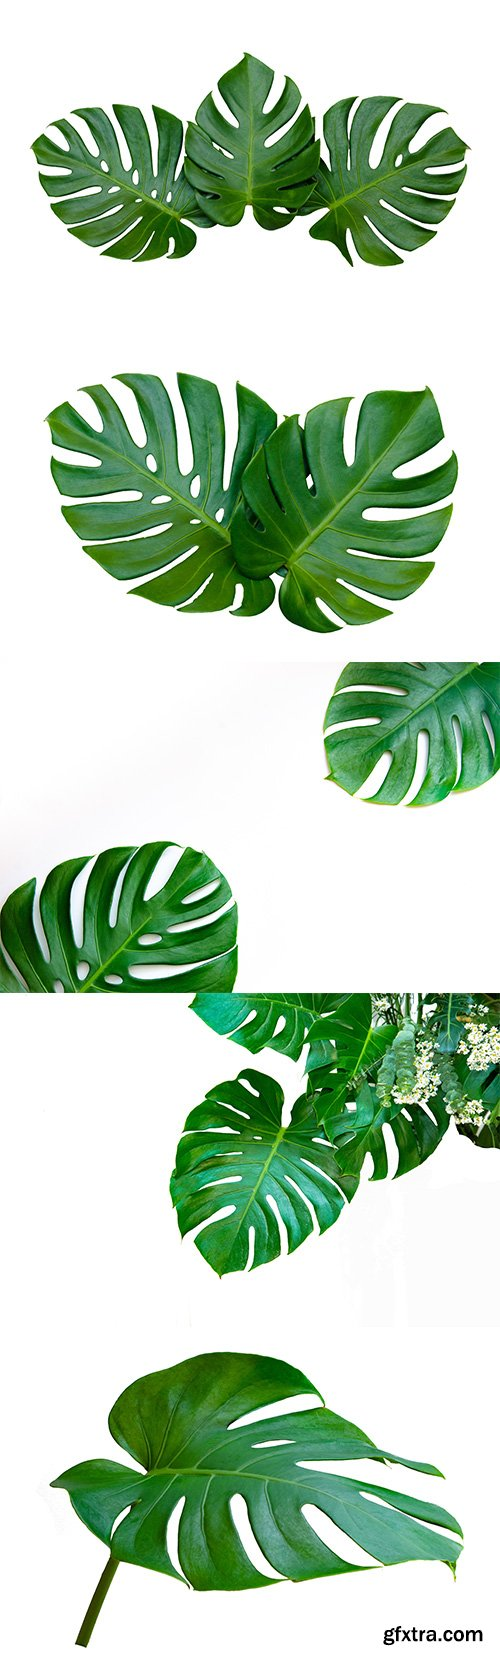 Monstera Leaves Isolated - 10xJPGs